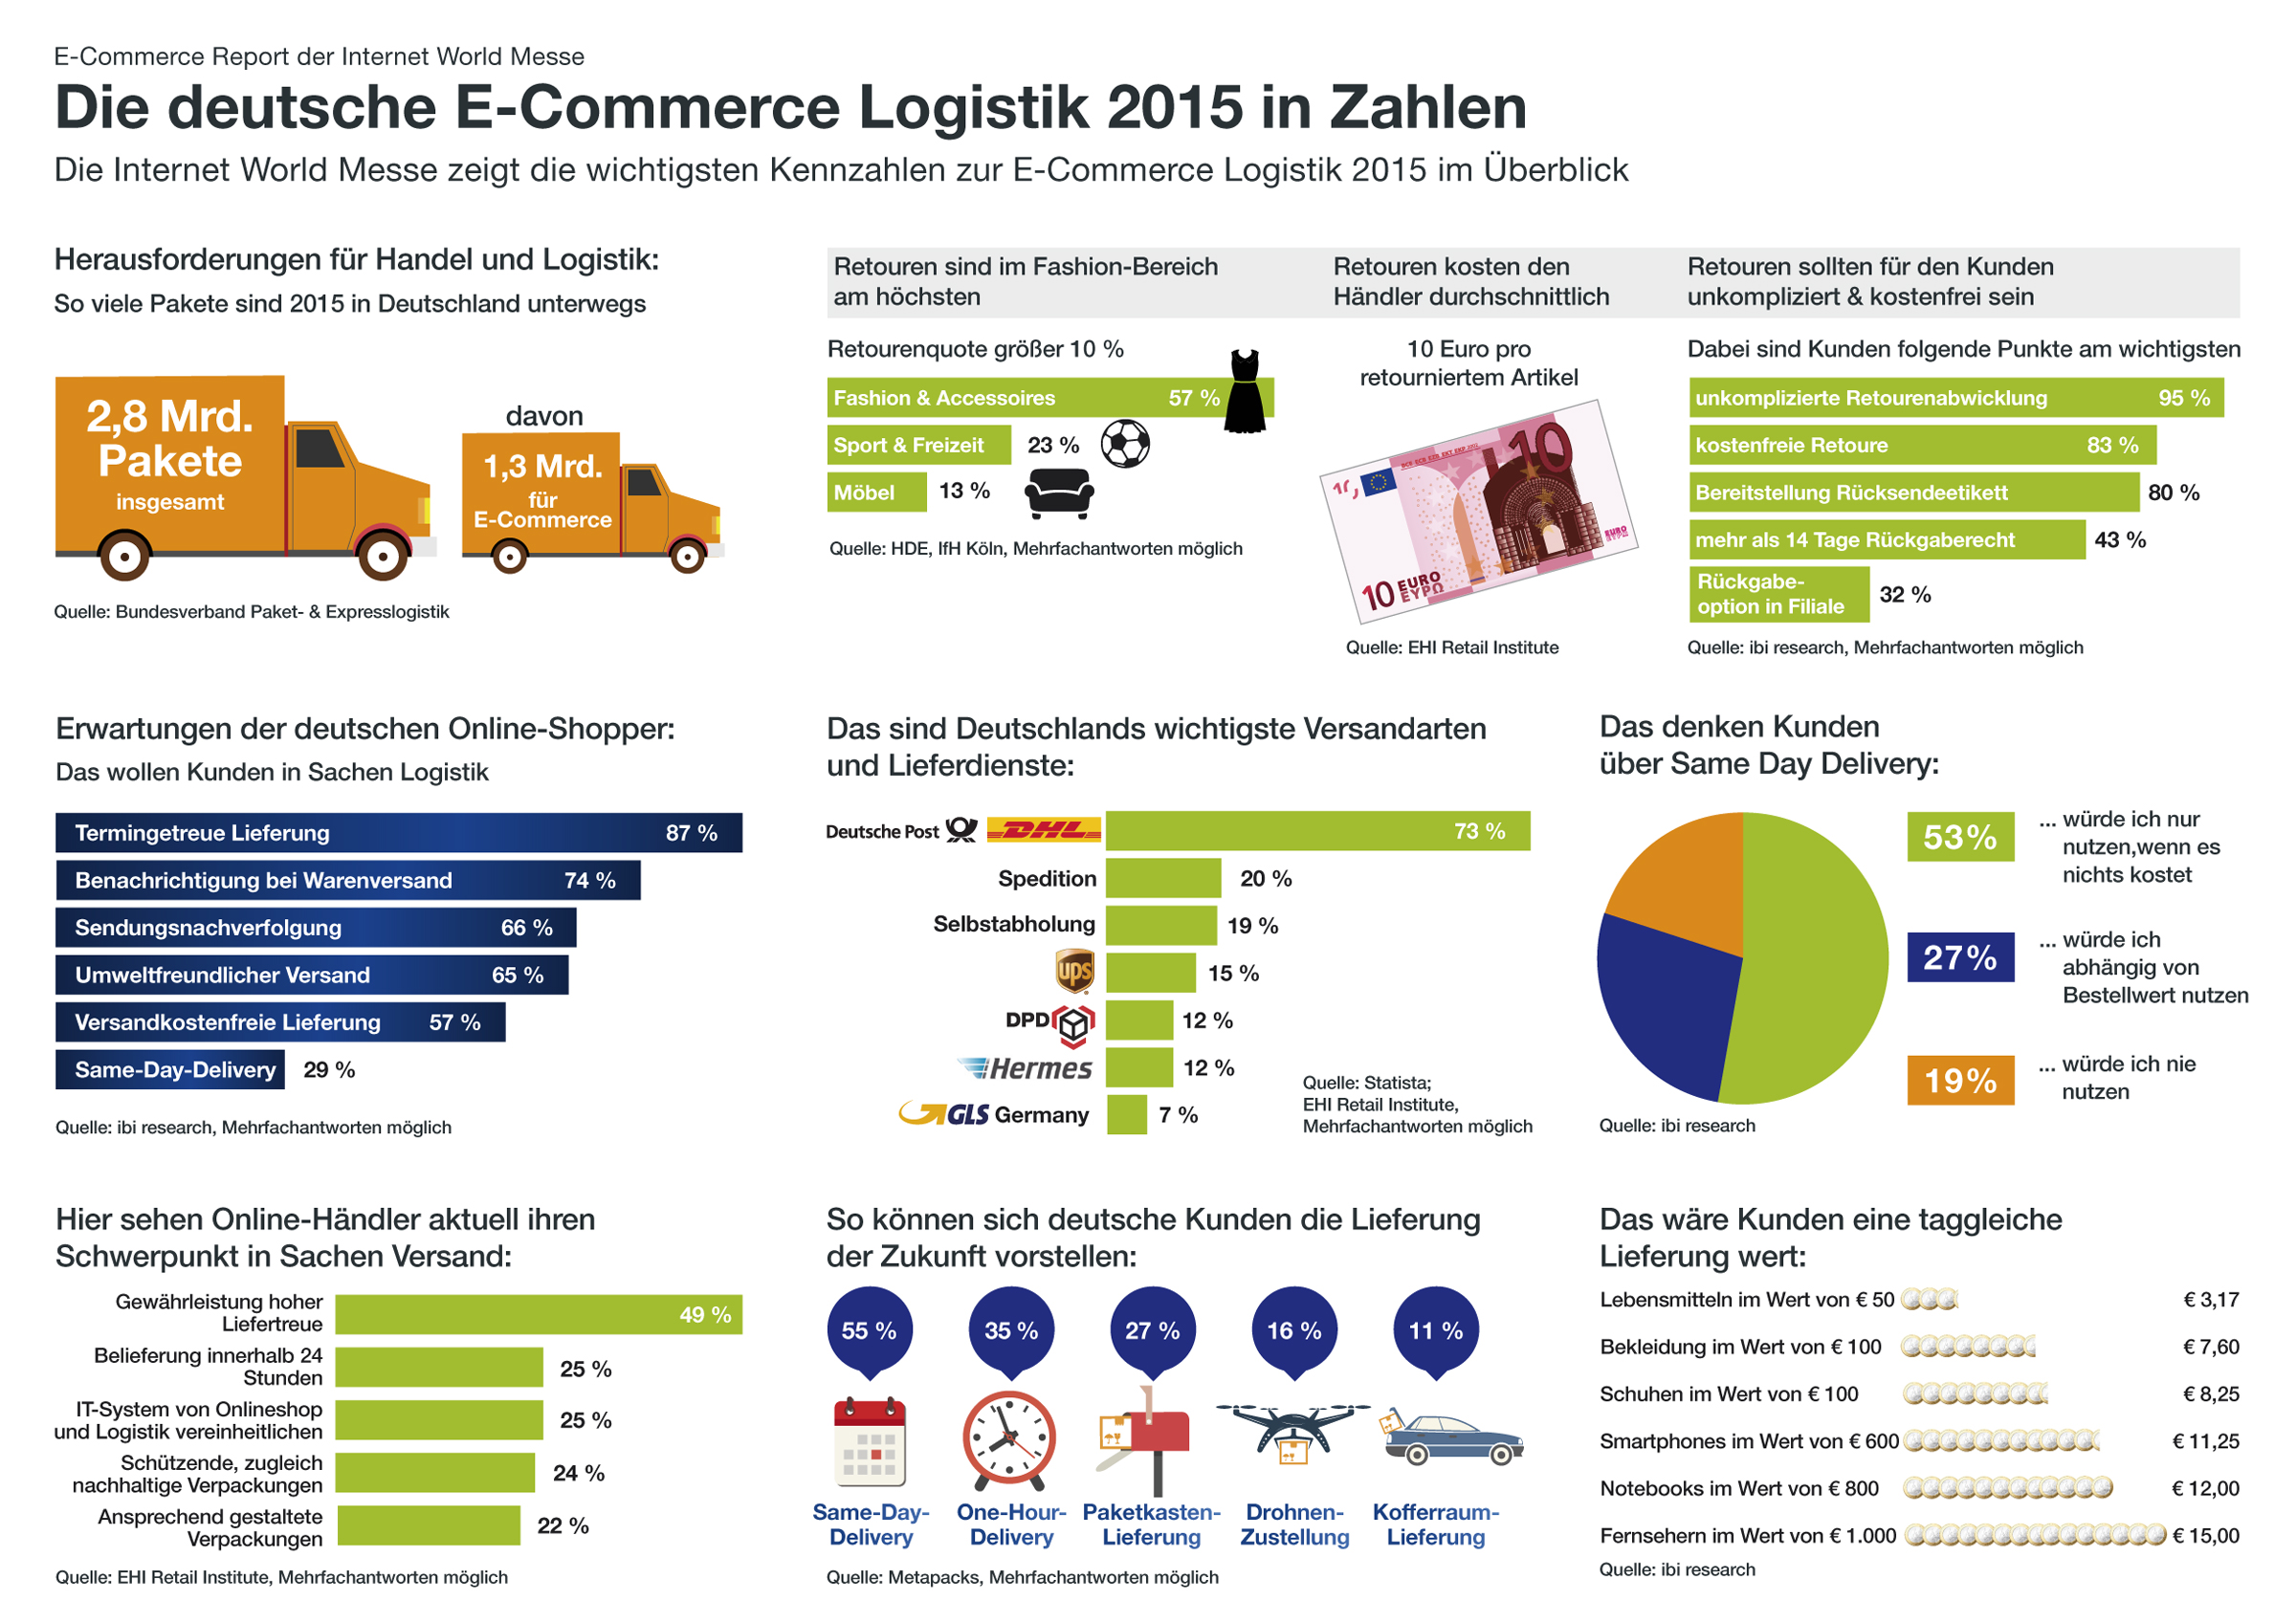 Infografik_Der deutsche Online-Versand 2015 in Zahlen_Copyright Internet World Messe